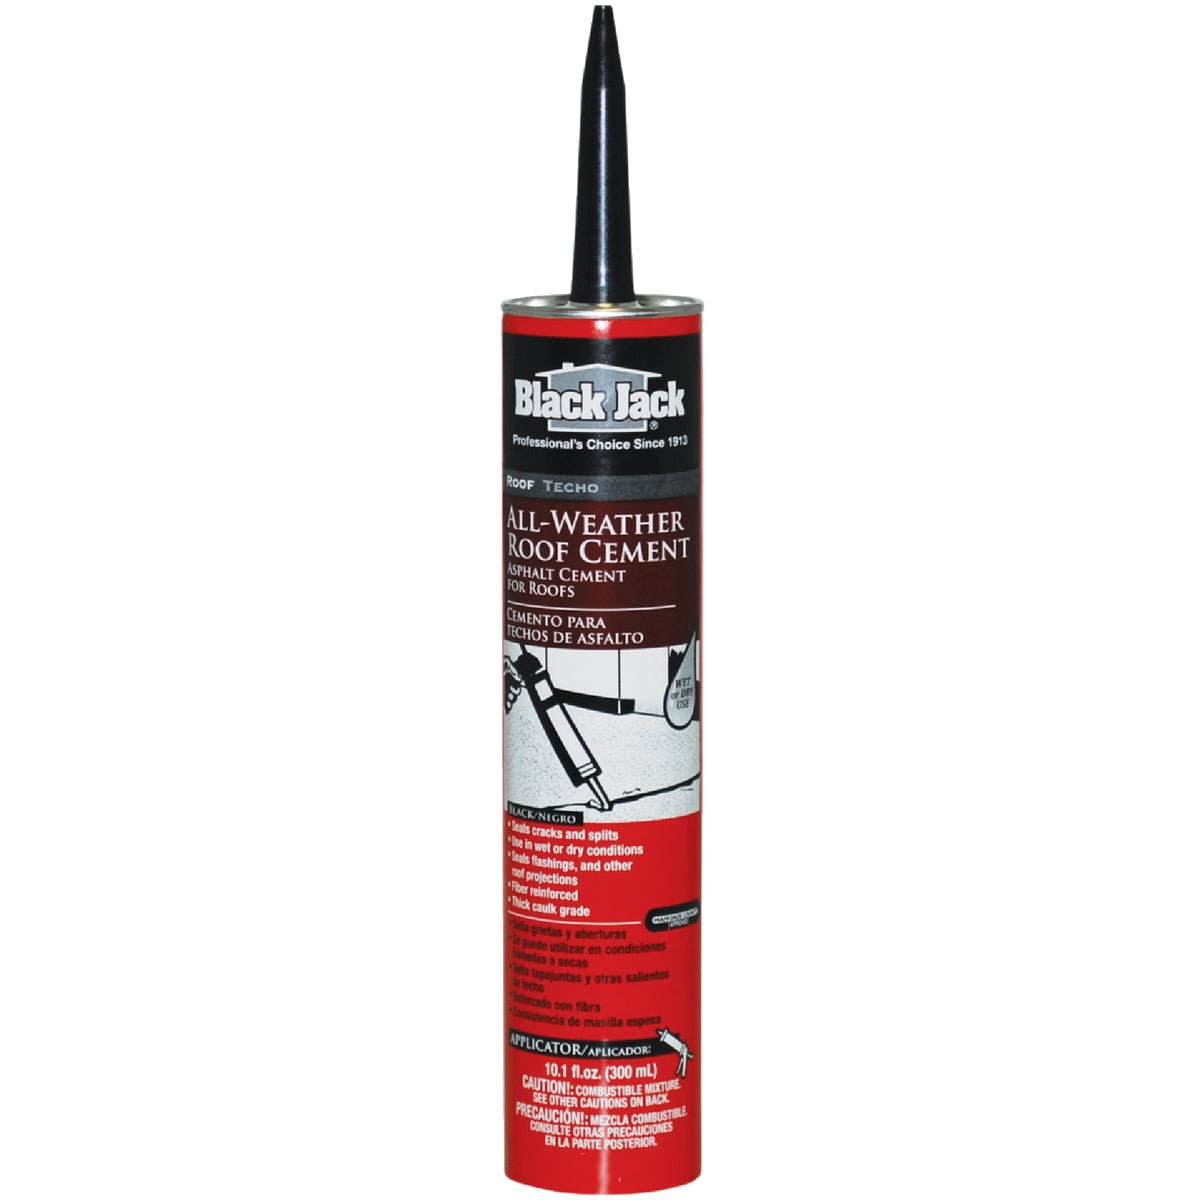 10OZALL WTHR ROOF CEMENT - 2172-9-66 by Gardner Gibson Inc